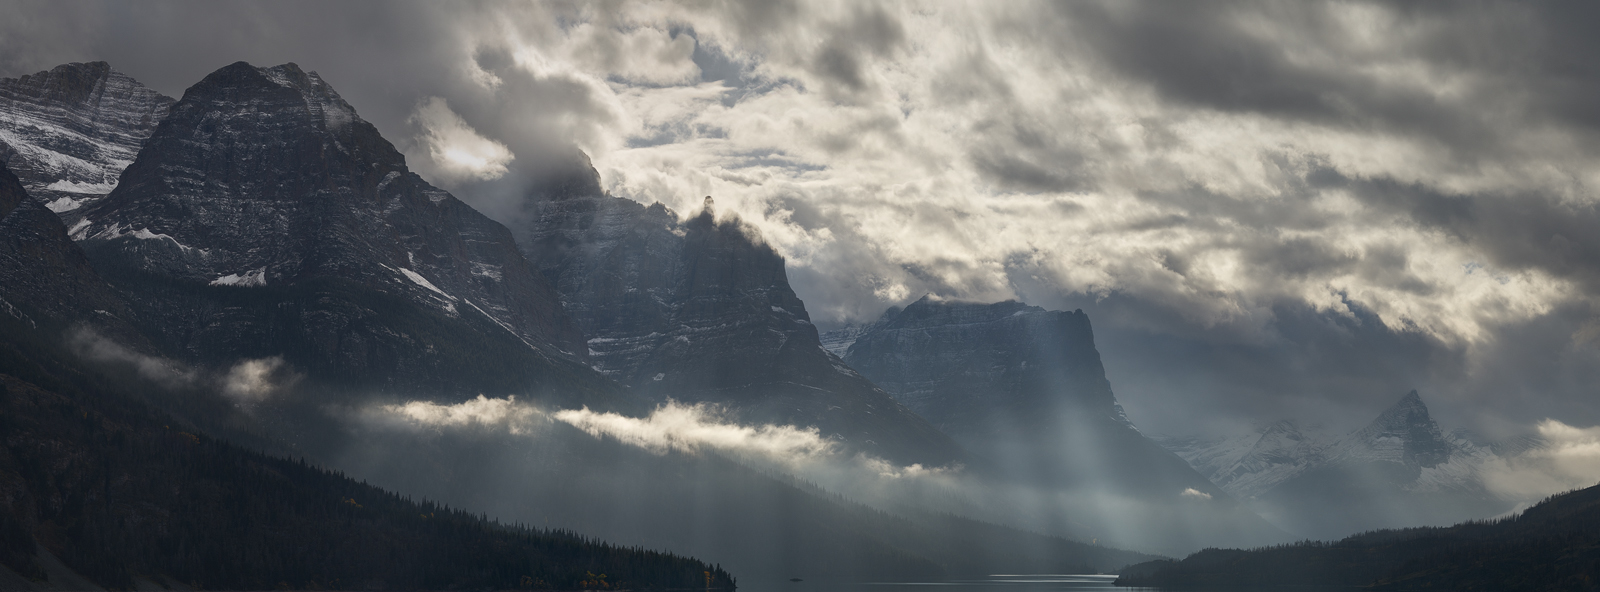 Panoramic, landscape, Glacier, Autumn, storm, light, clouds, montana, panoramique, paysage, orage, automne, photo